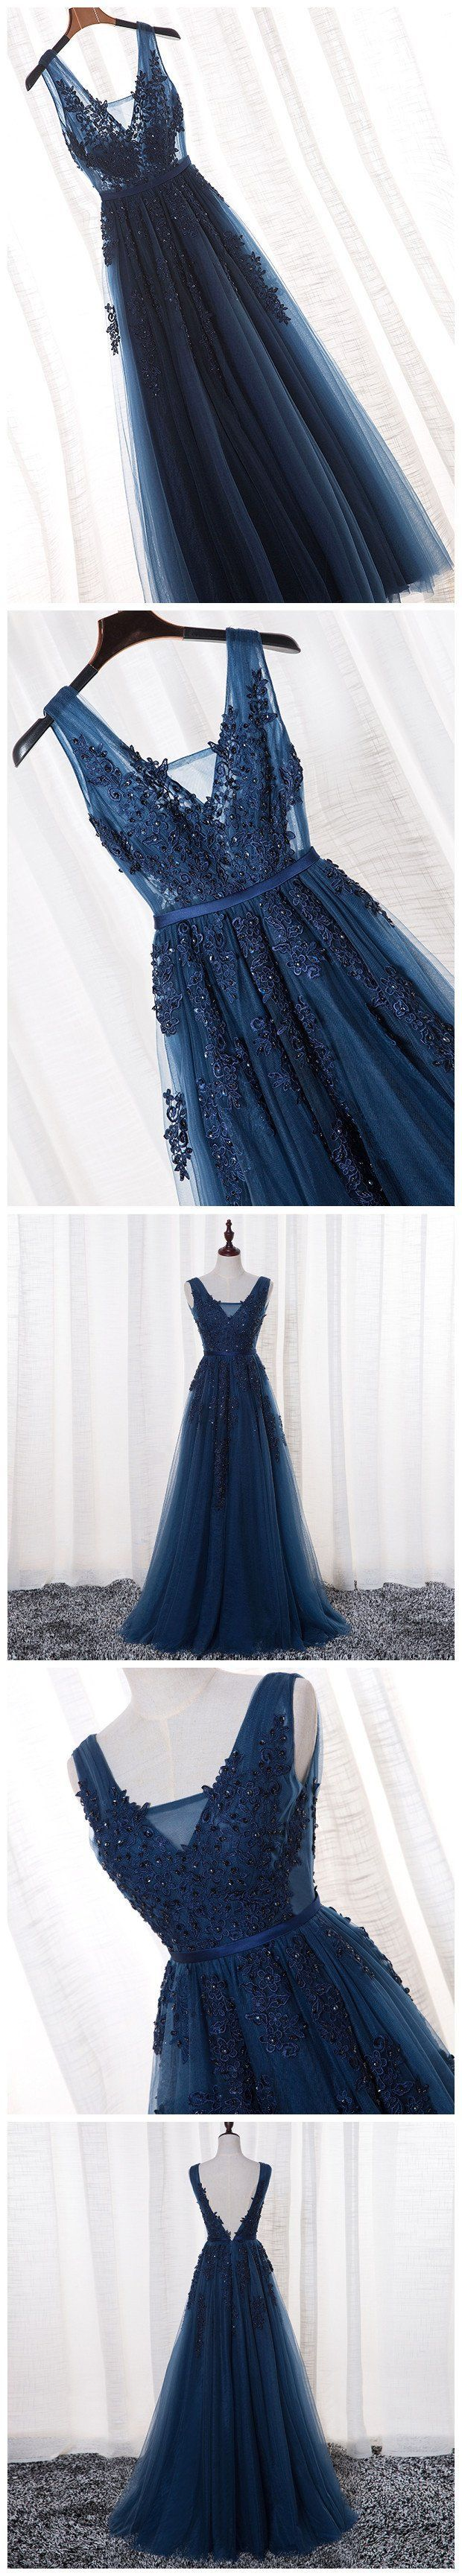 v-neck a-line long prom dress tulle applique beaded evening dressHS146 #fashio